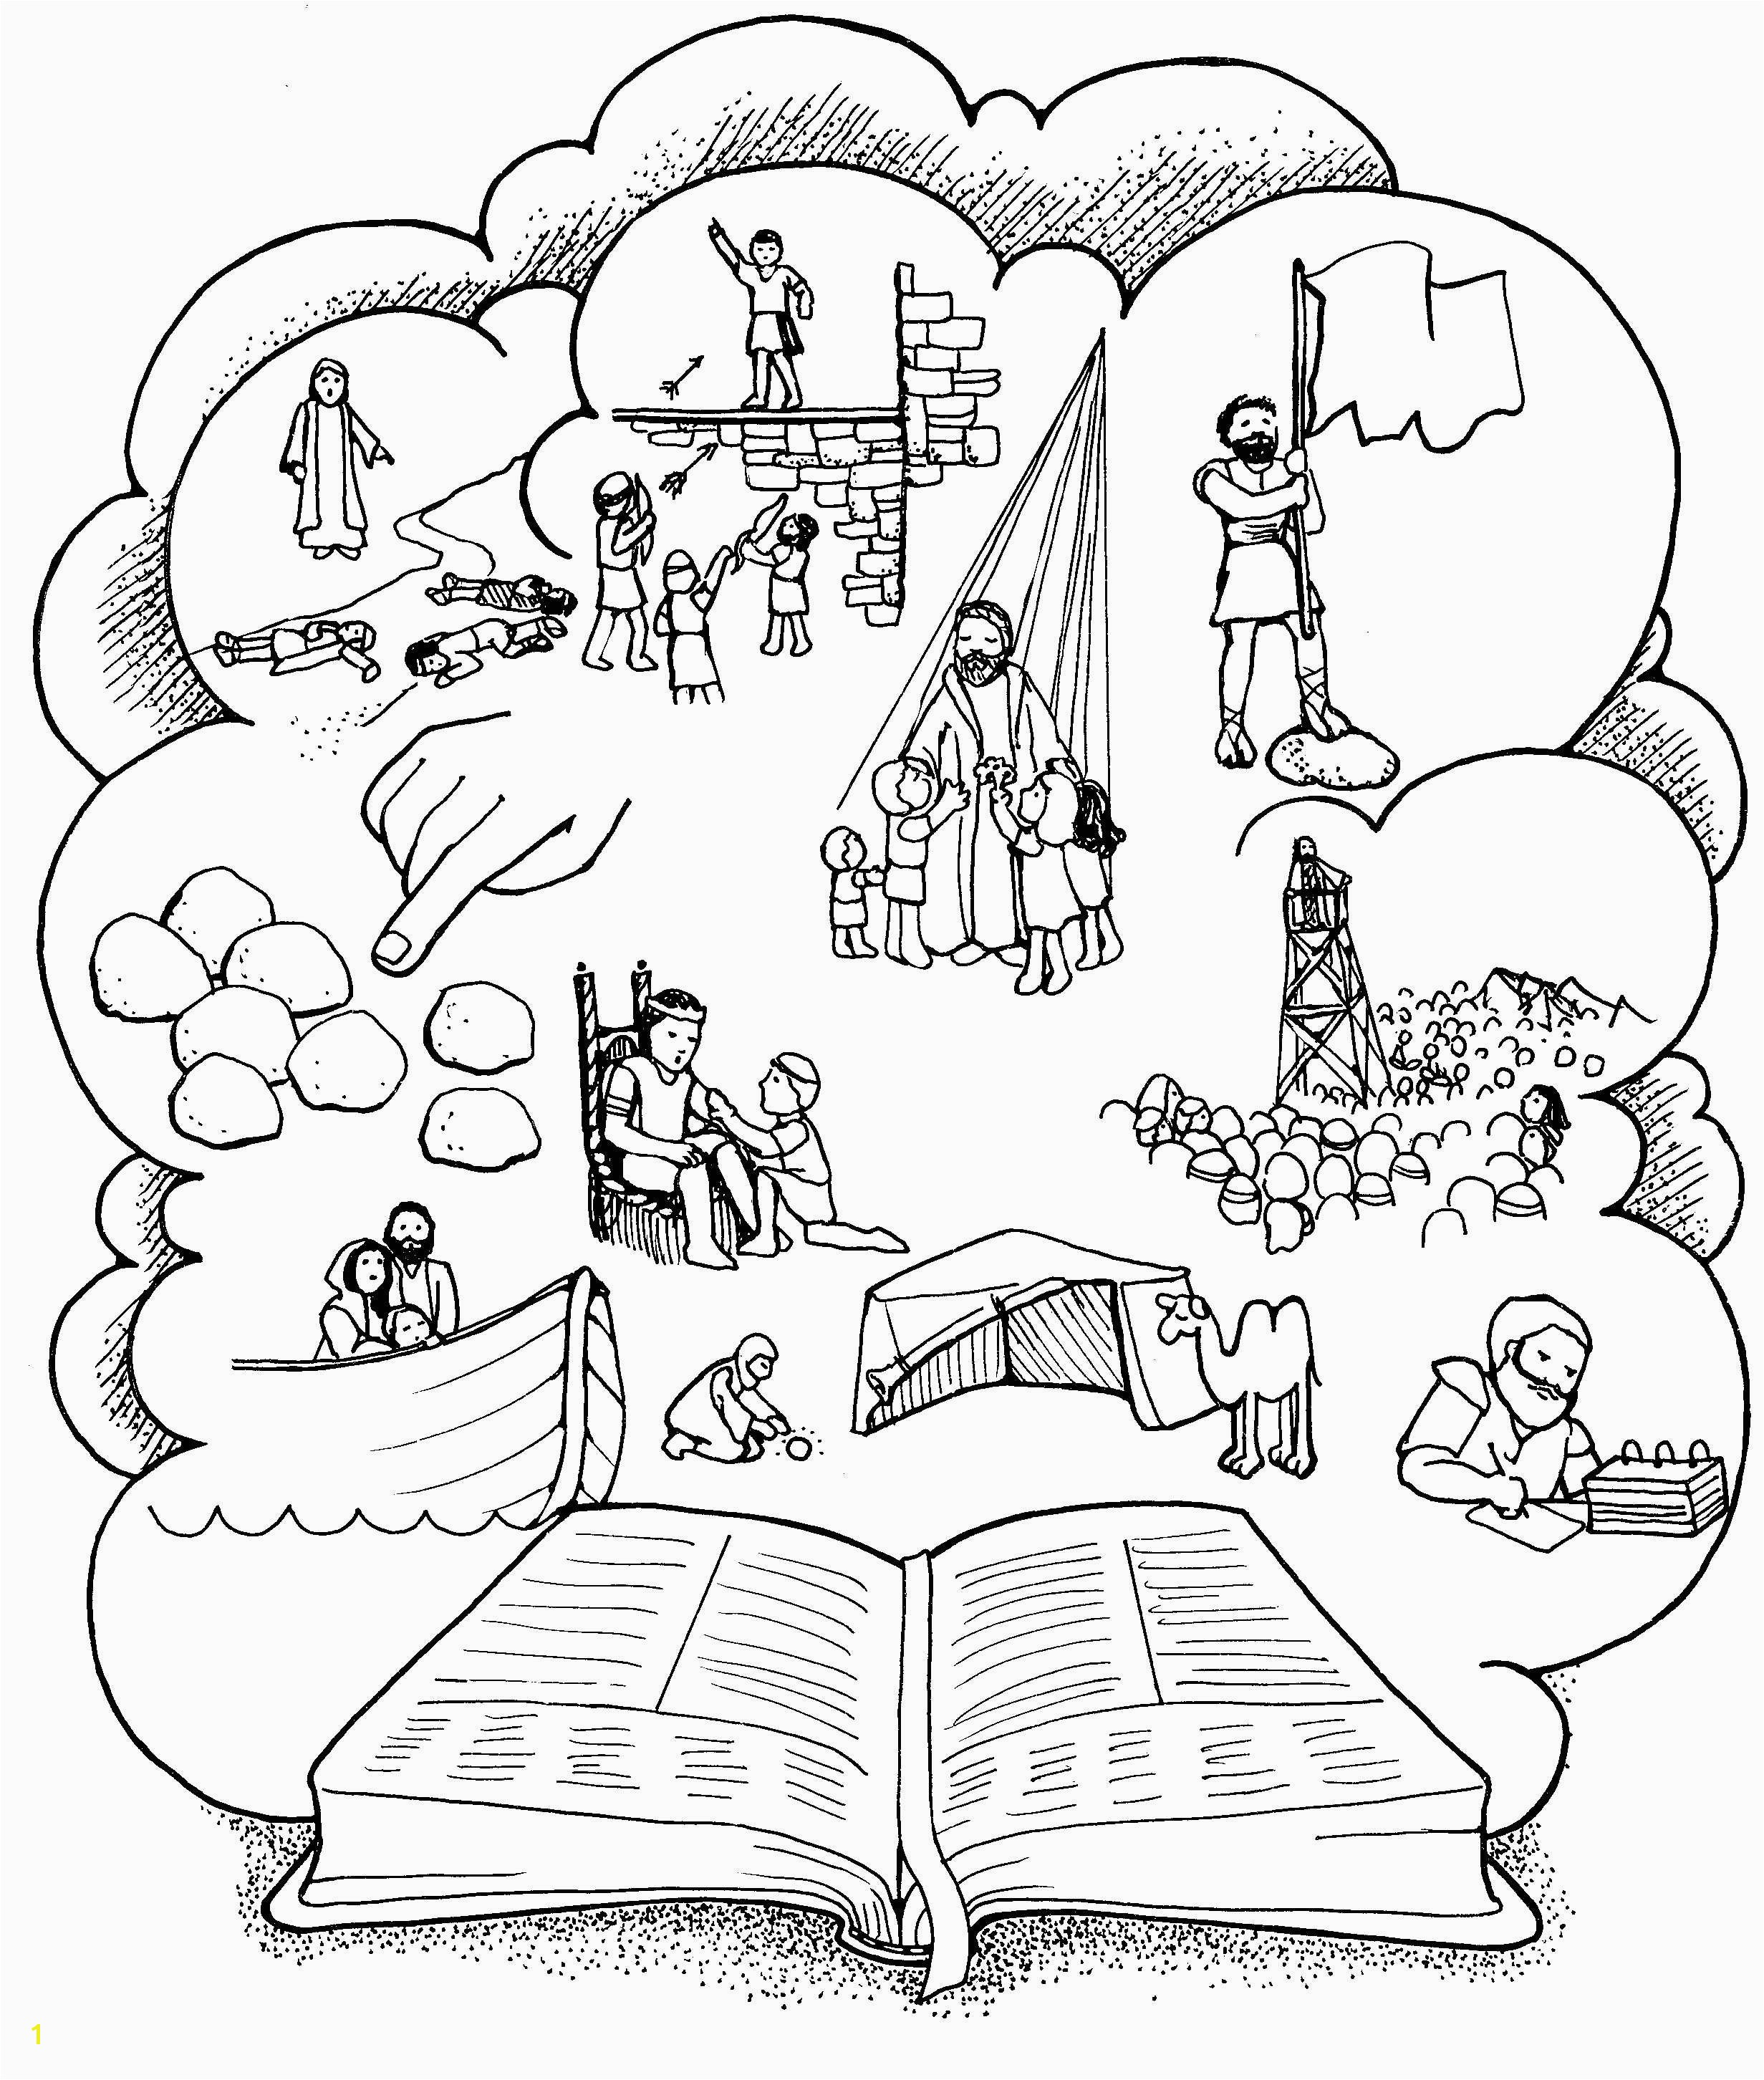 Necktie Coloring Page Kindergarten Coloring Pages Coloring Pages